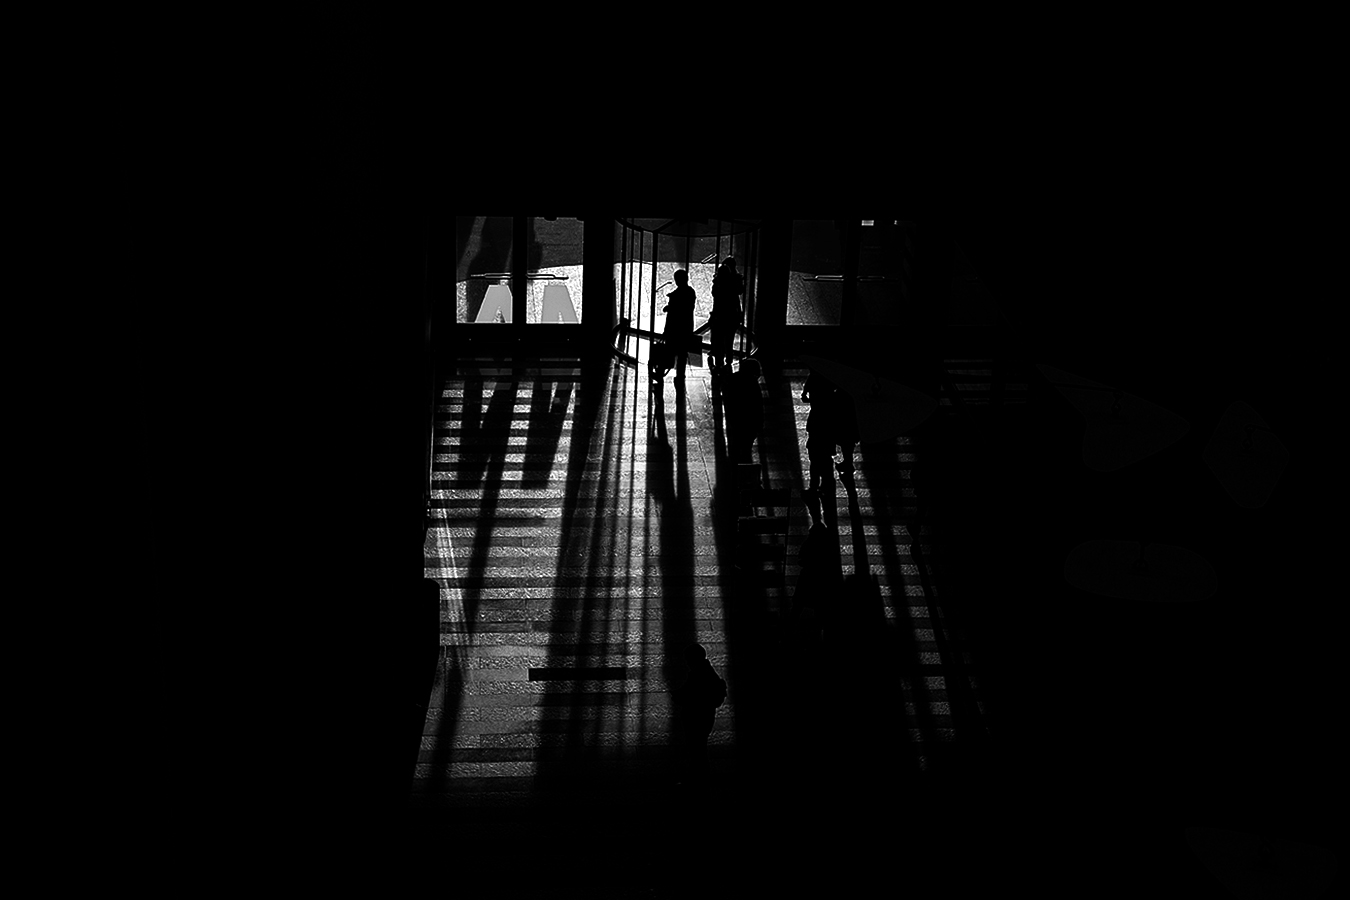 Linda_Ruan_light_and_shadow_people_walking_San_Francisco_black_and_white